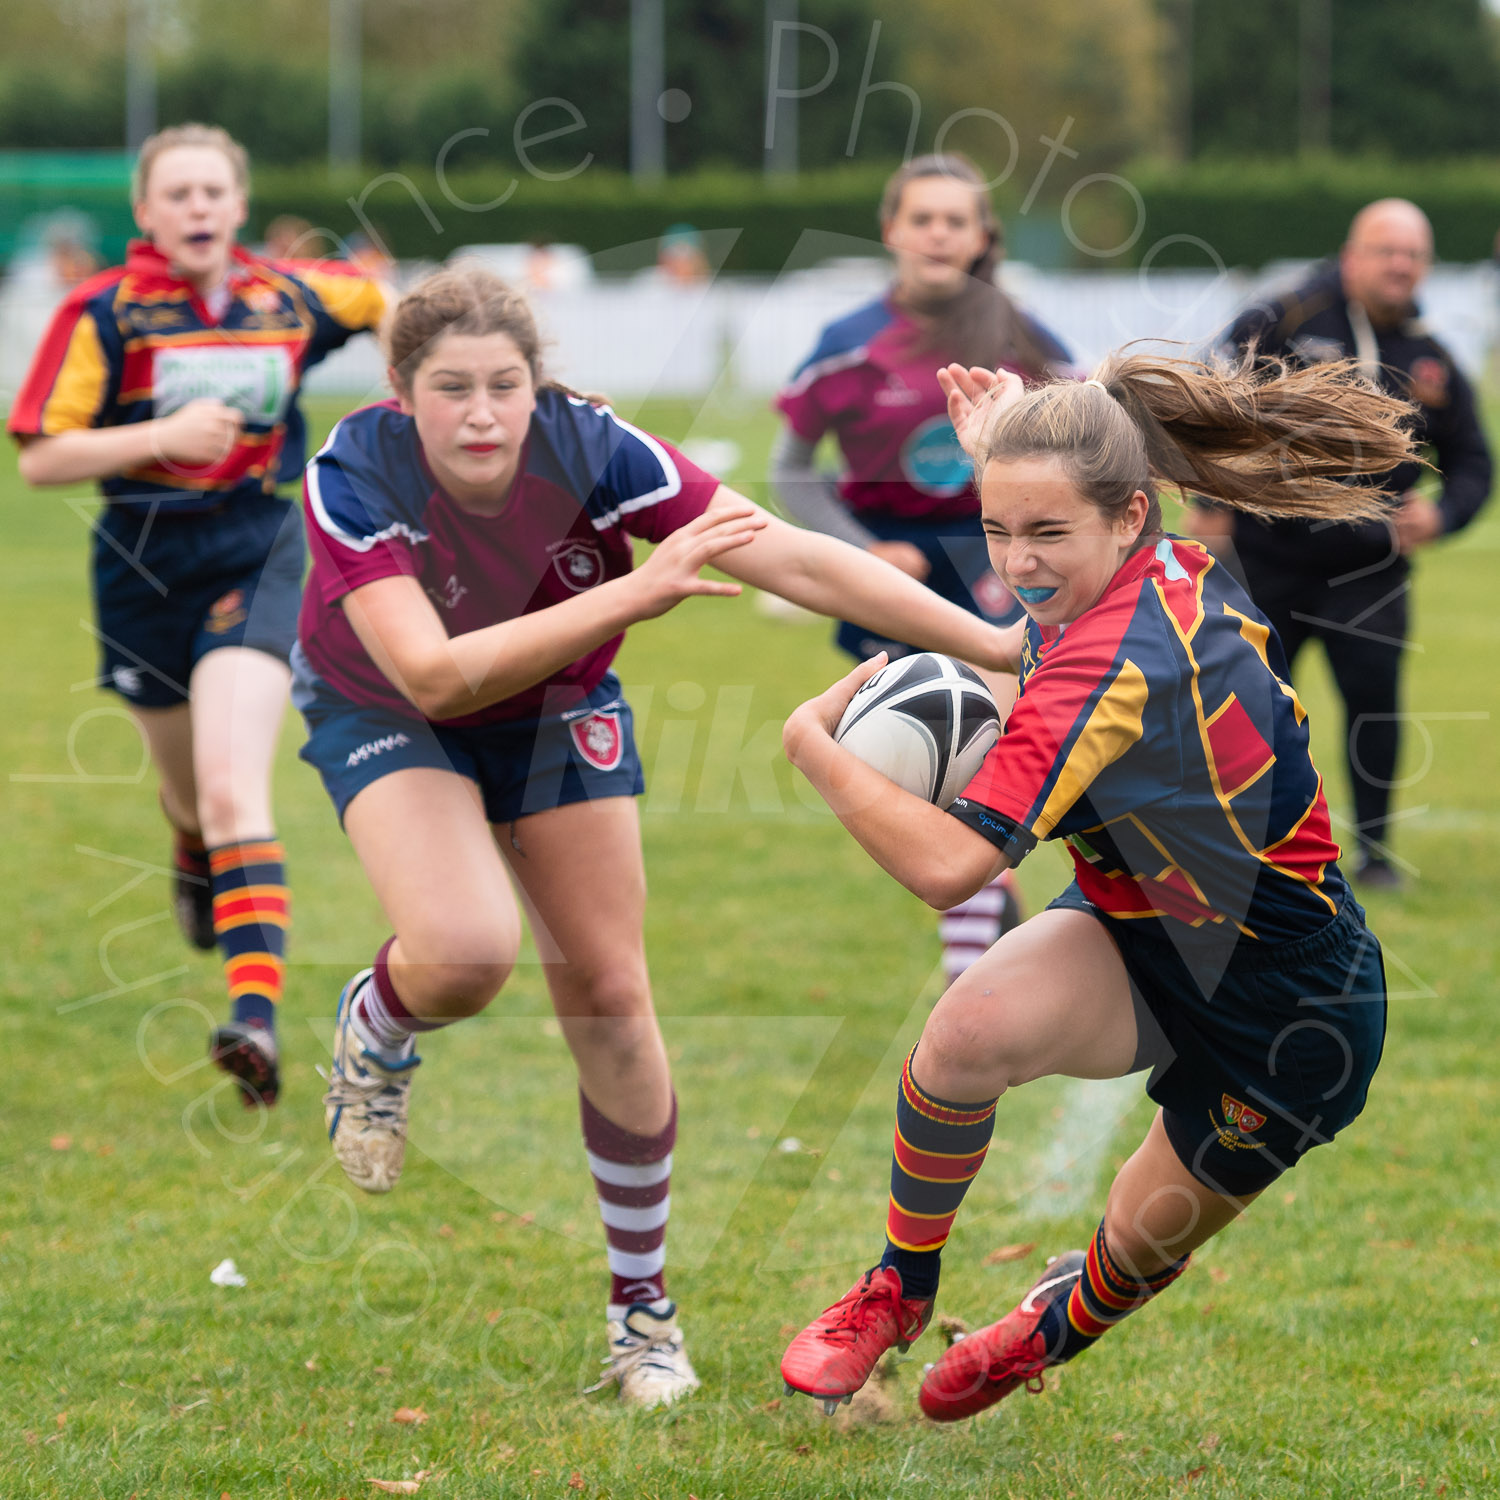 U15 girls showing that nothing is held back (Photo: Iain Frankish, Actuance Photography)